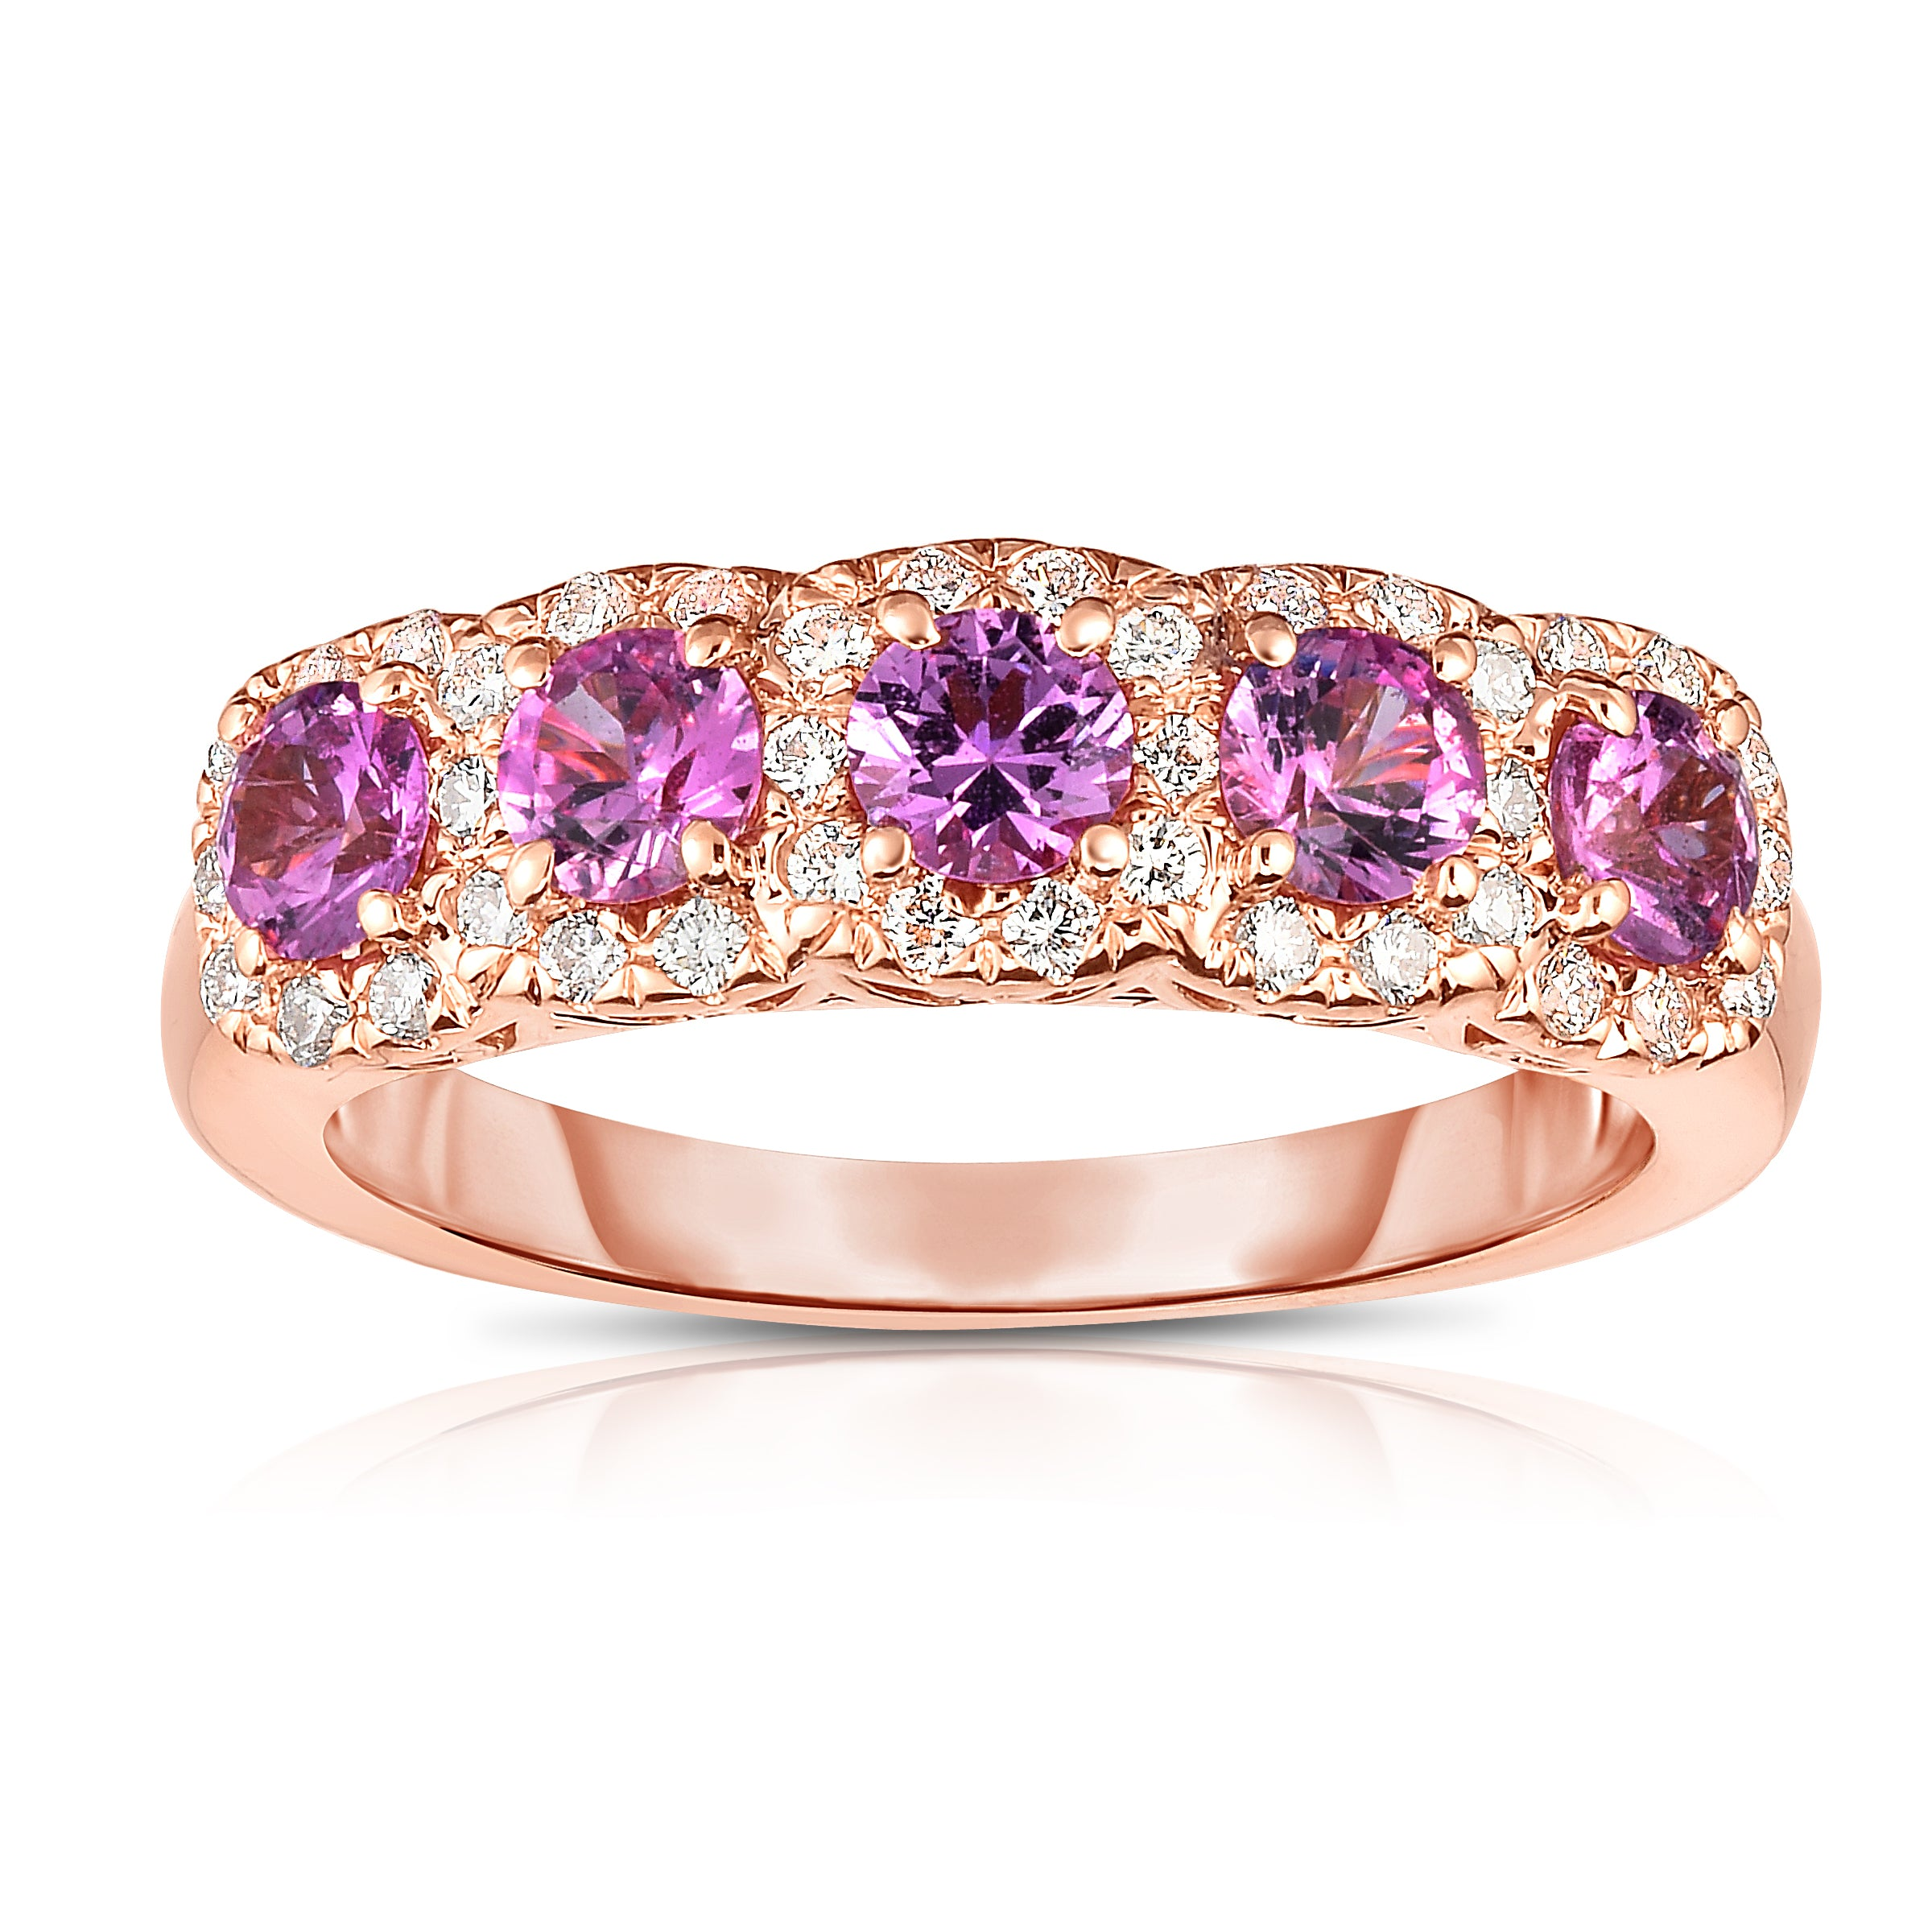 p ring gold masters wedding princess engagement art pink set caravaggio band sapphire ct white carat caravagio product rings